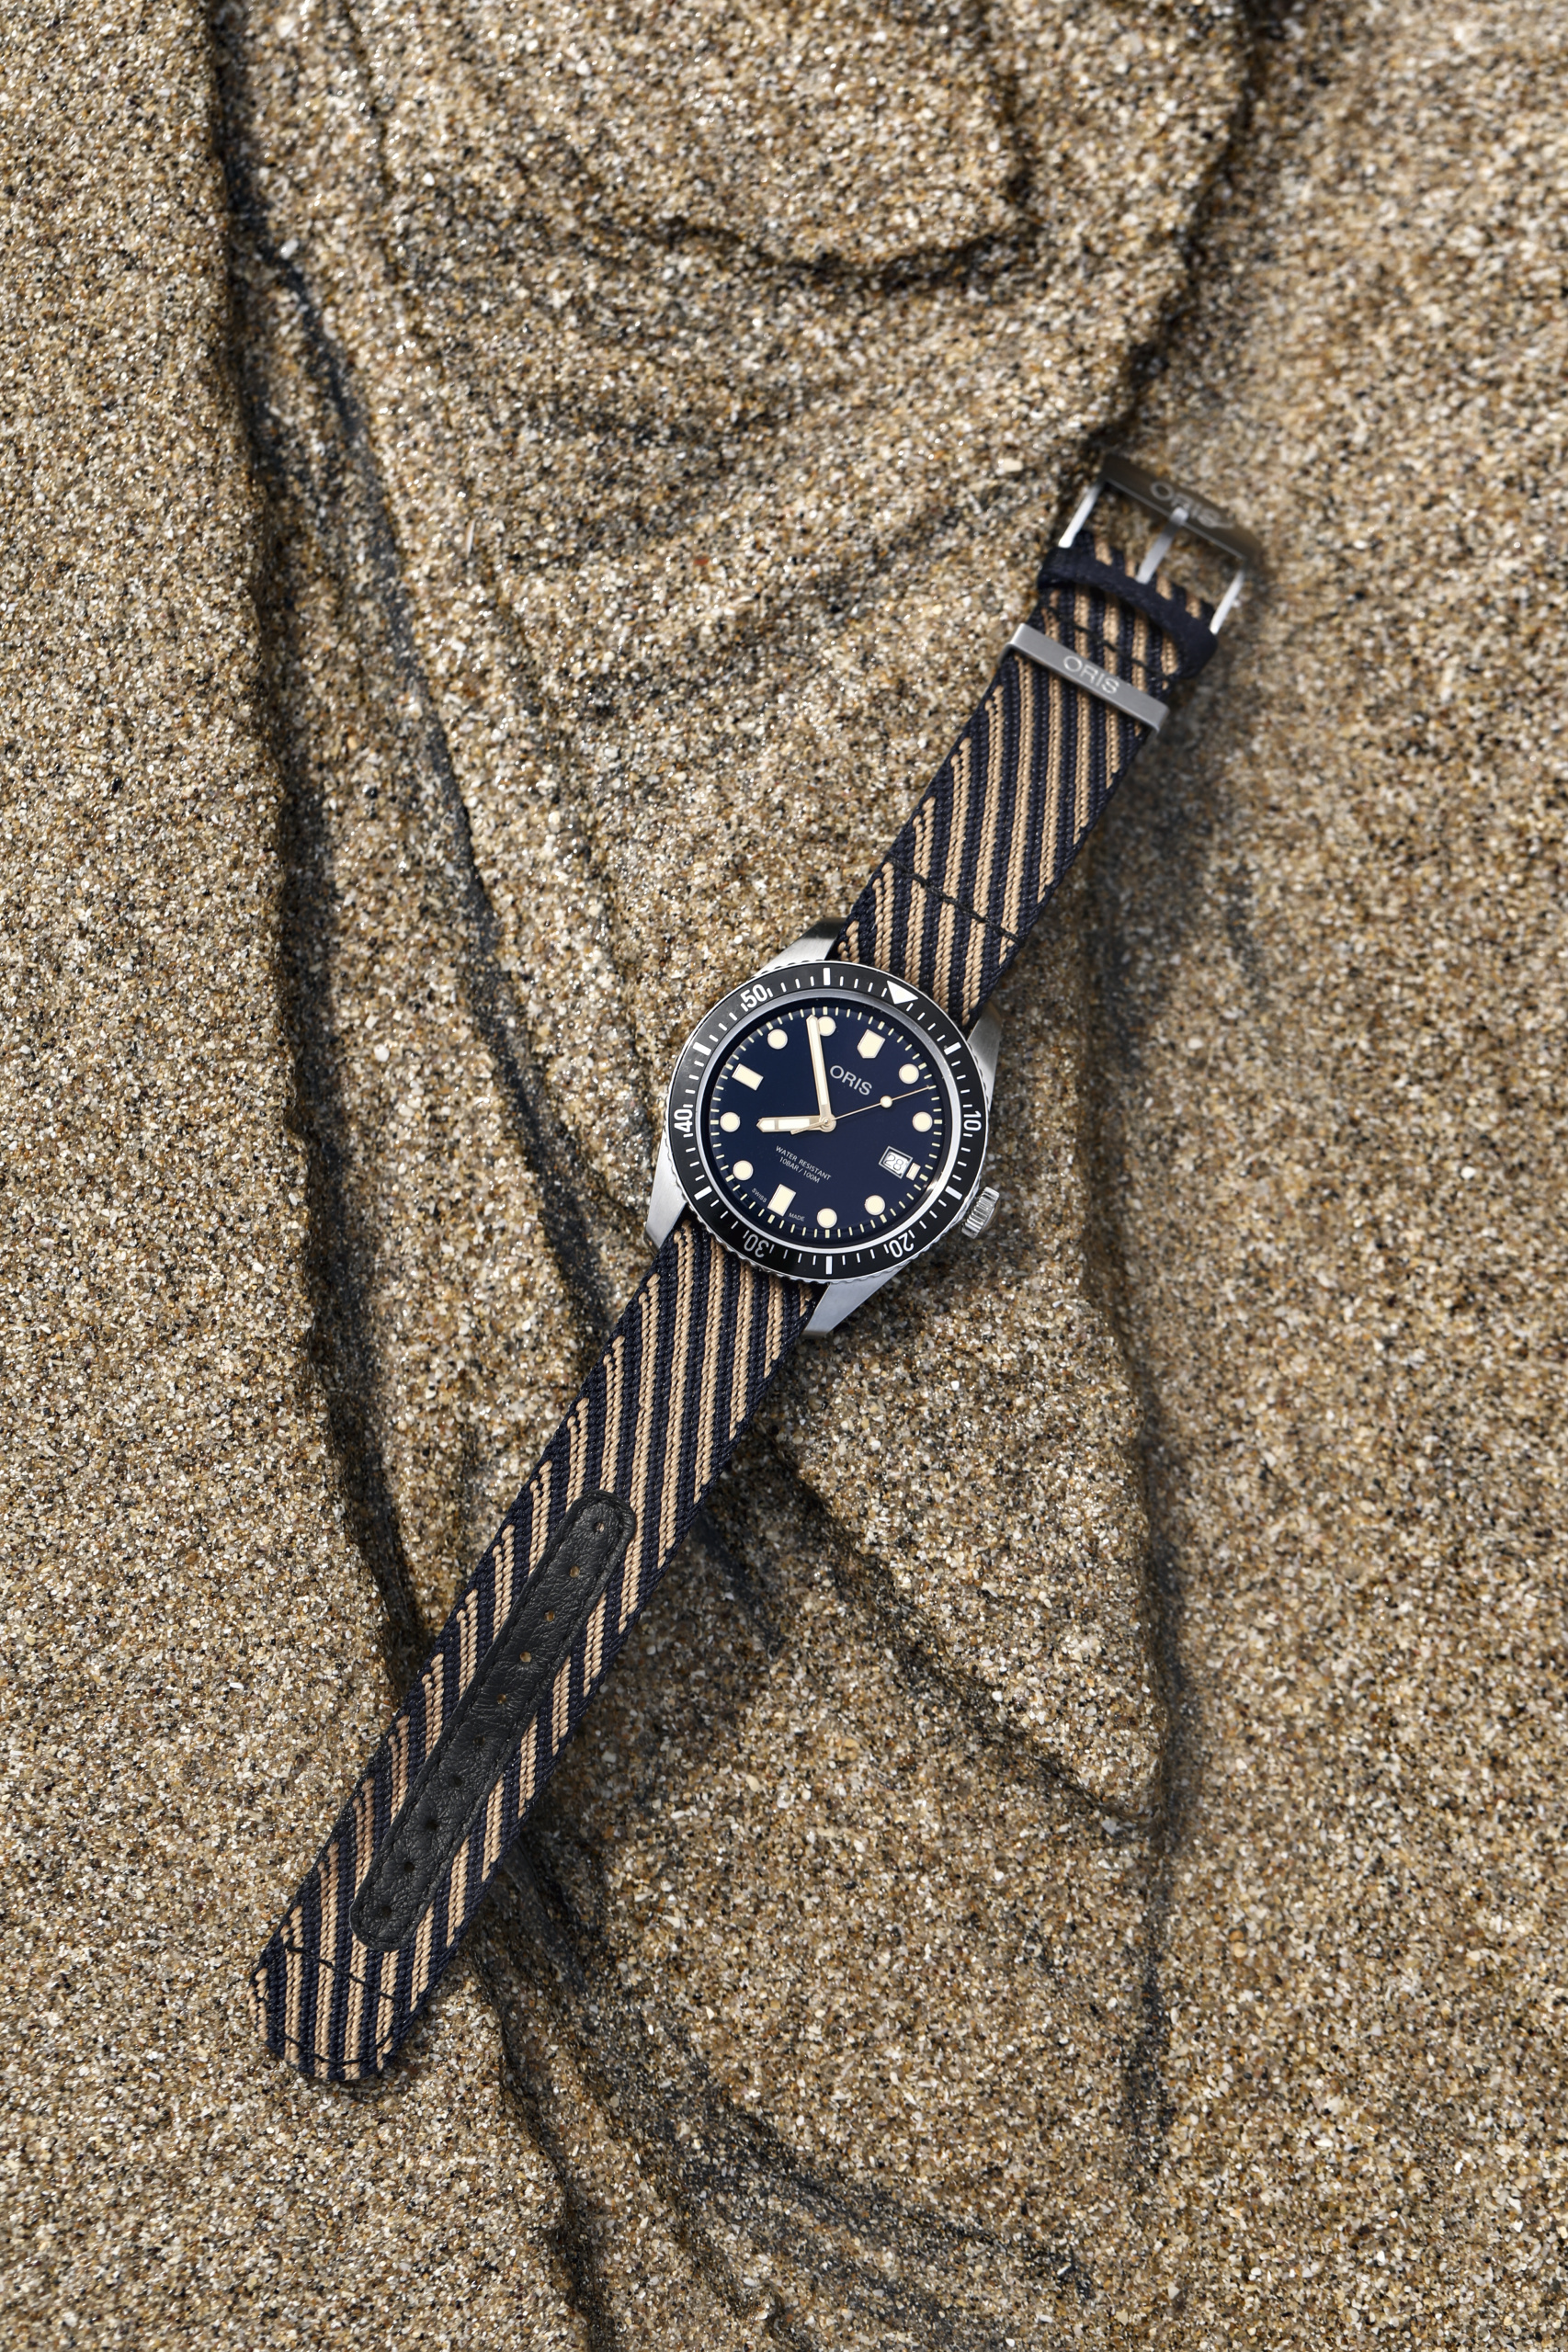 Cleanup Day Watch Reference  01 733 7720 4035-07 5 21 13 Oris Divers  Sixty-Five efe9dfdd1f